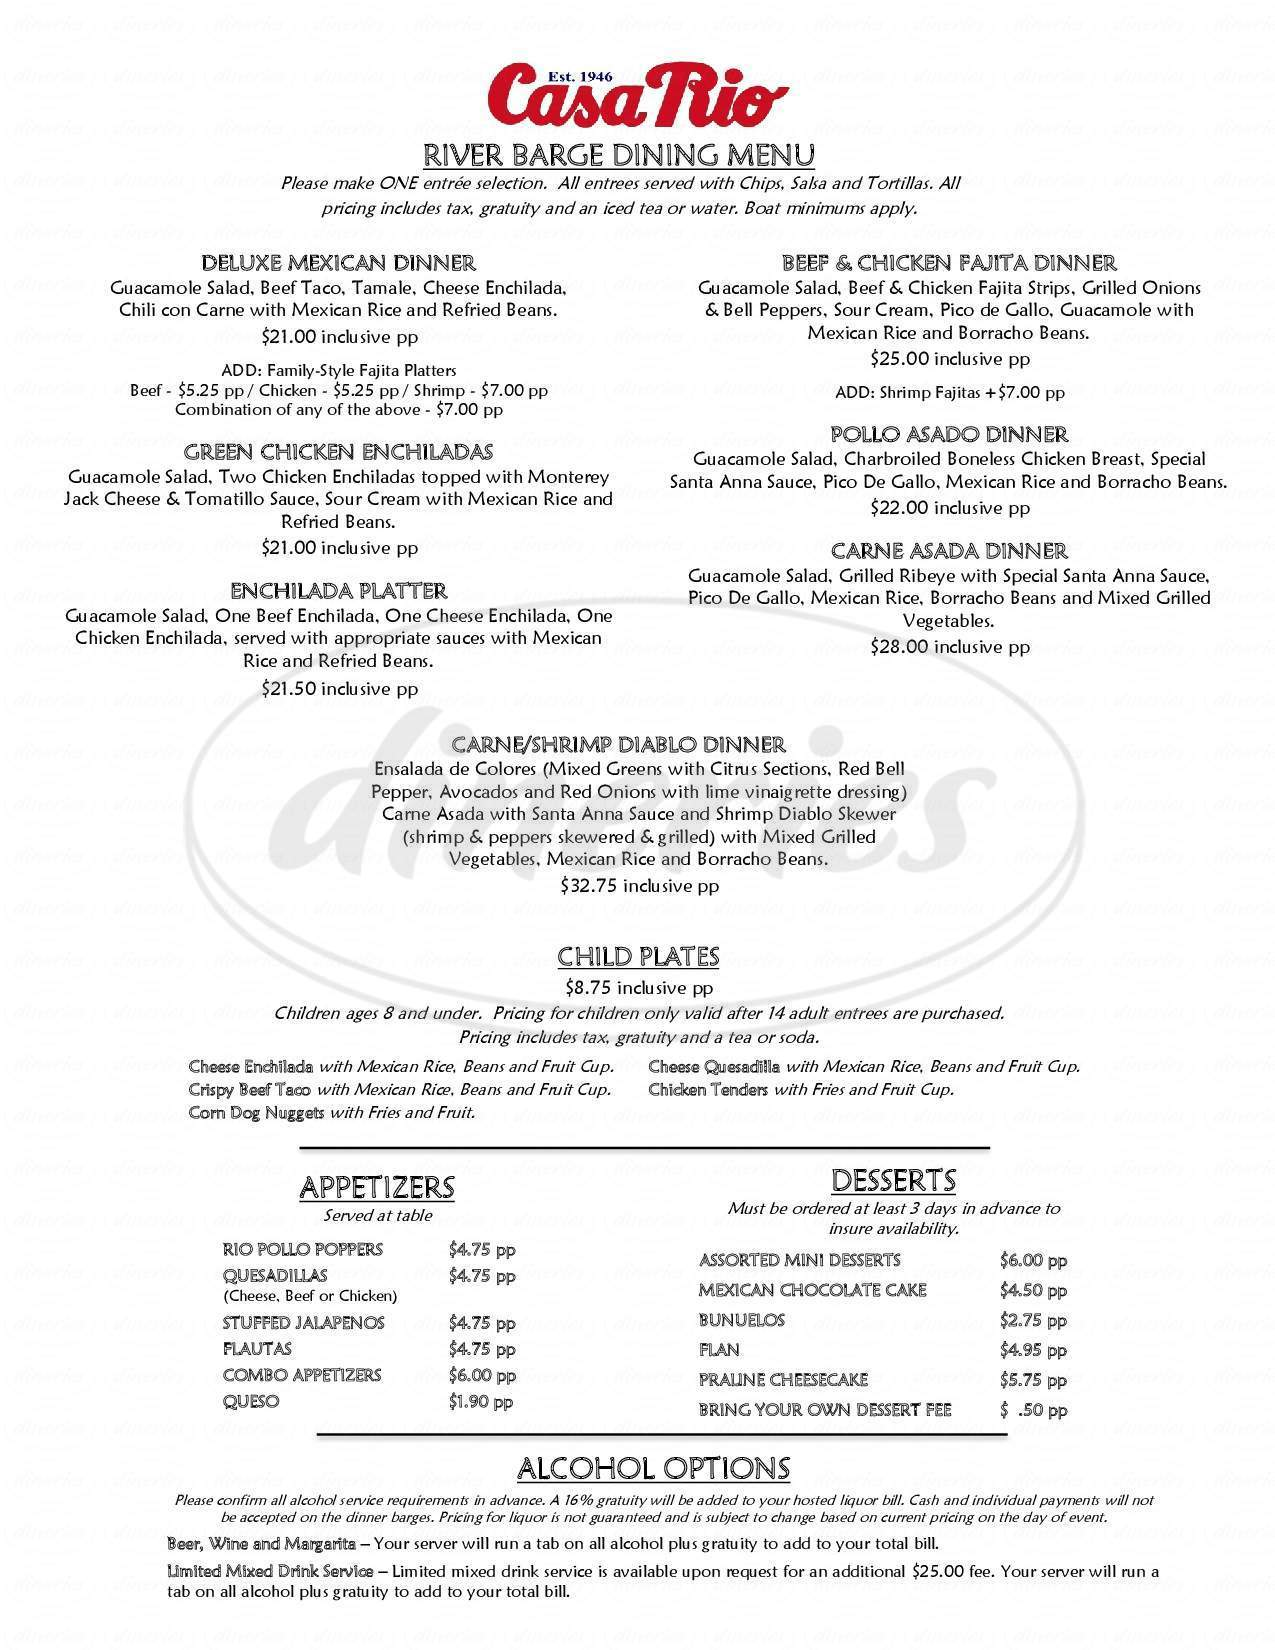 menu for Casa Rio